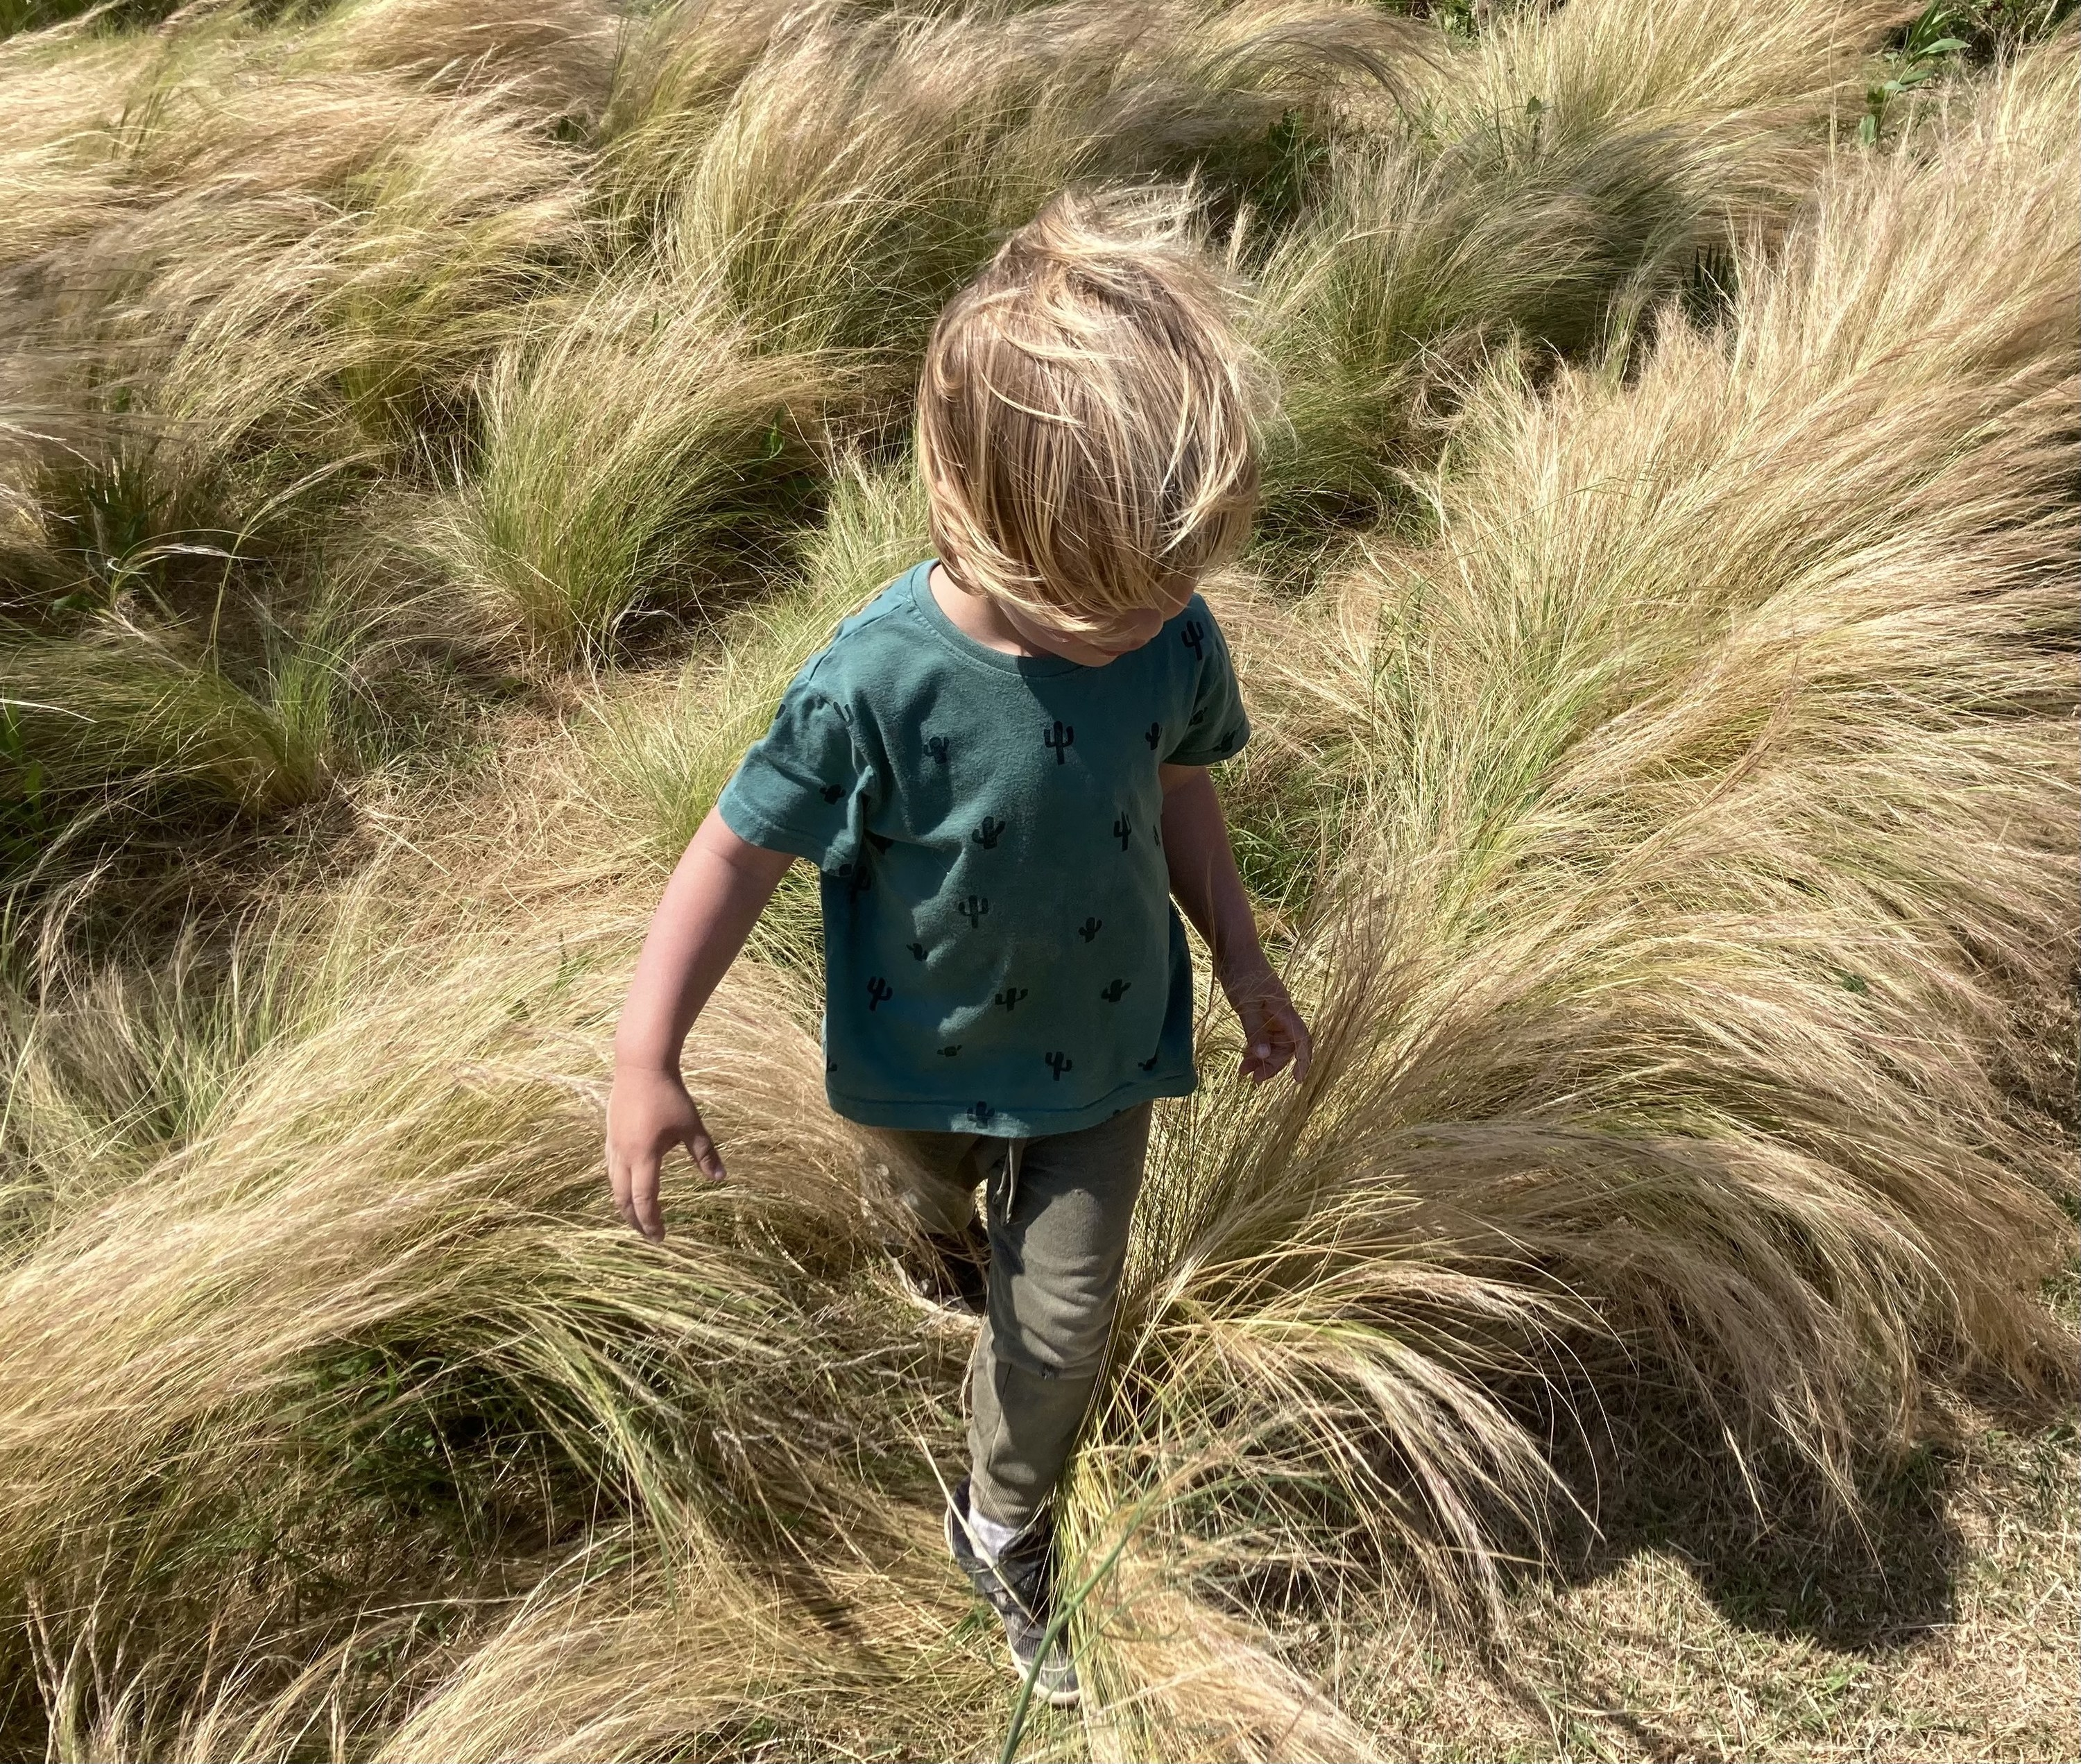 A boy with tousled blonde hair walking through a windy wheat field